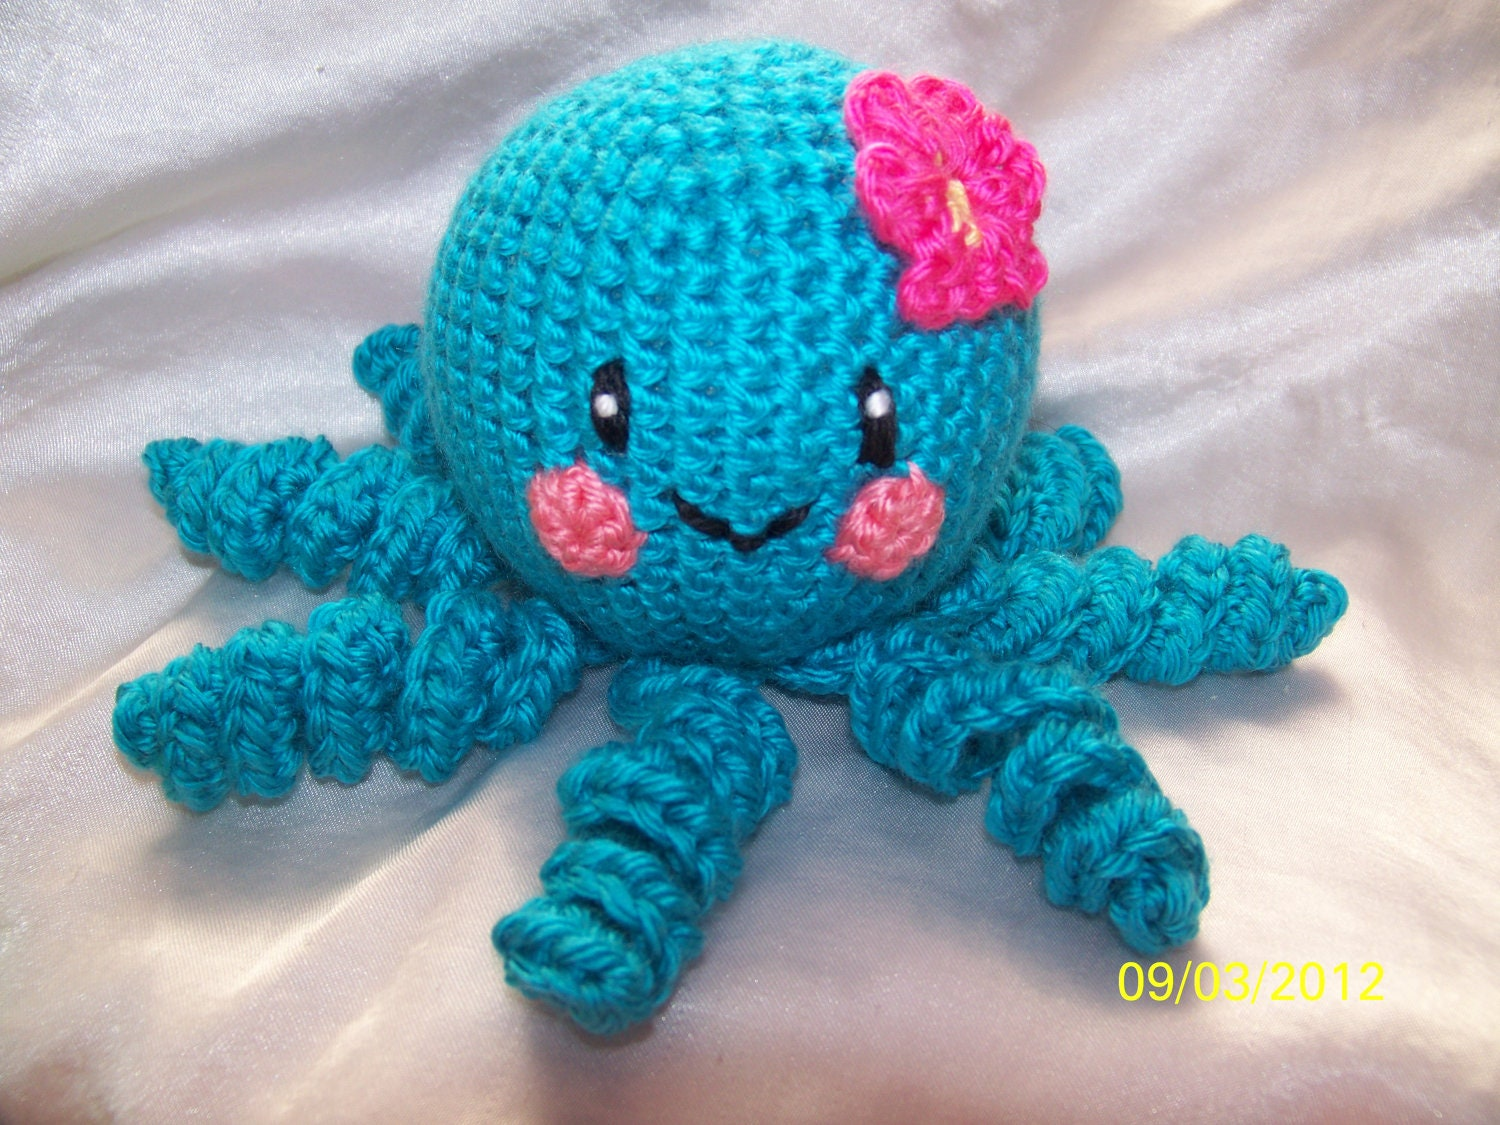 Crochet Patterns Octopus : Floral the cute little crochet octopus with by EEKsCreations